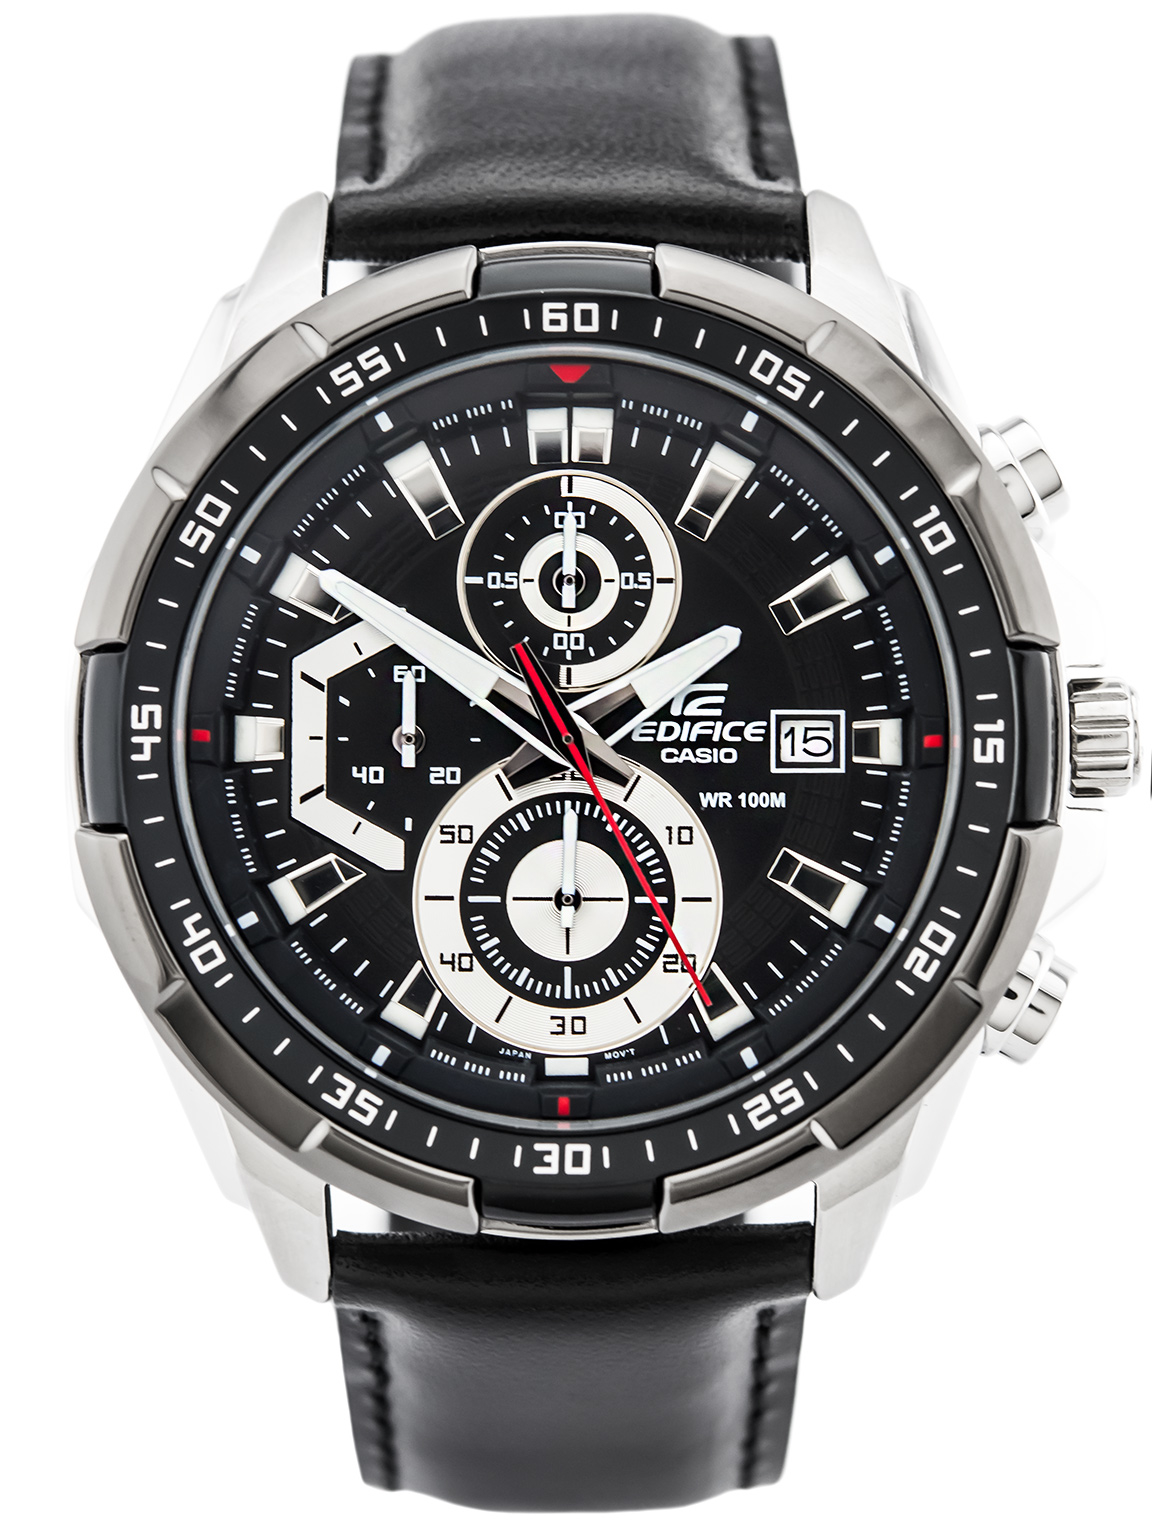 060fdc21b107 ... Casio watch men s large dial EDIFICE Red Bull F1 racing car EFR-539D-1A2